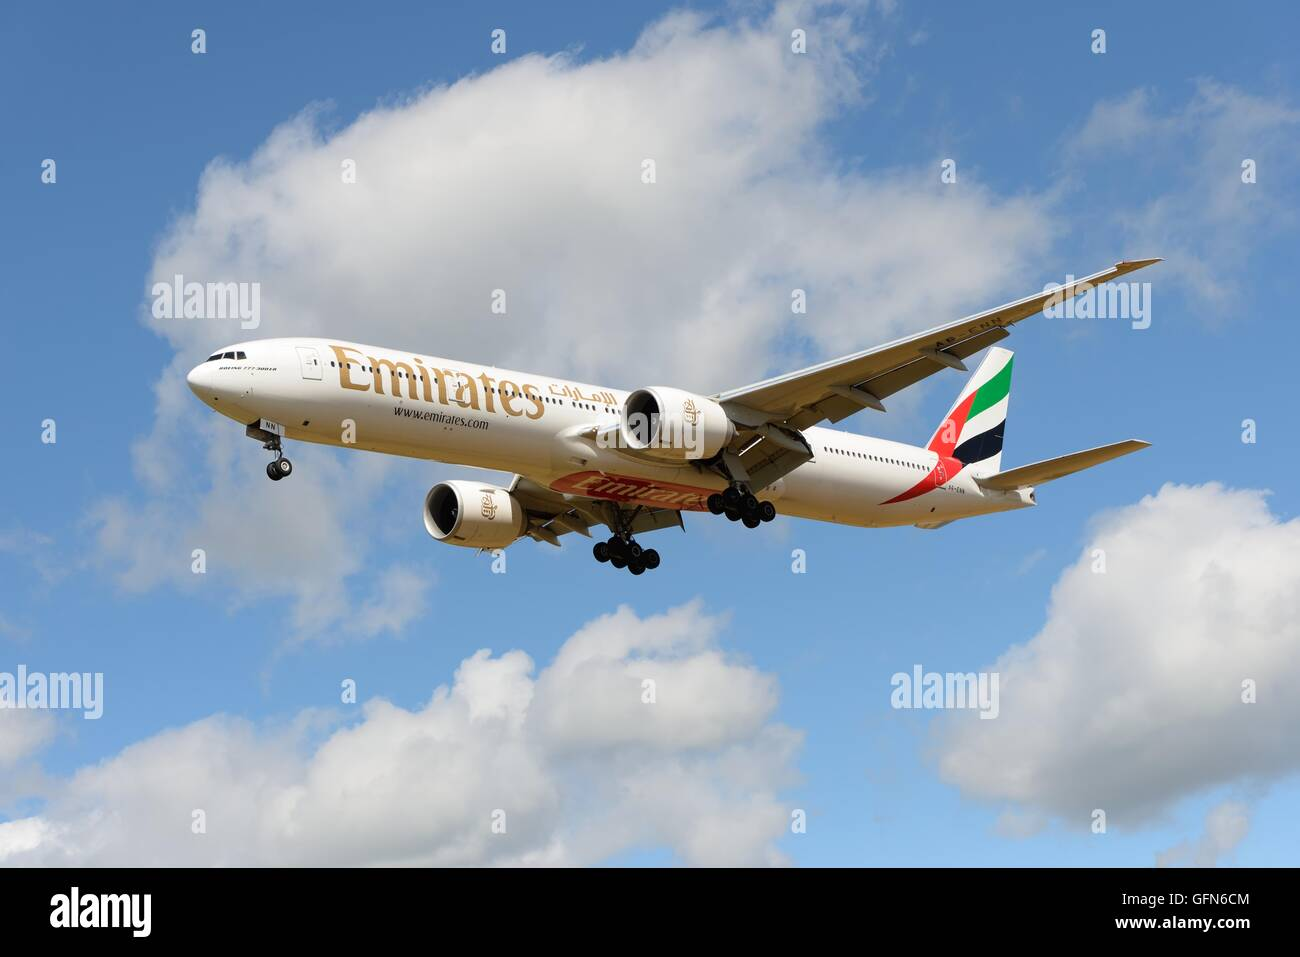 An Emirates Airlines Boeing 777-31HER on final approach to the airfield in Glasgow, Scotland, UK - Stock Image